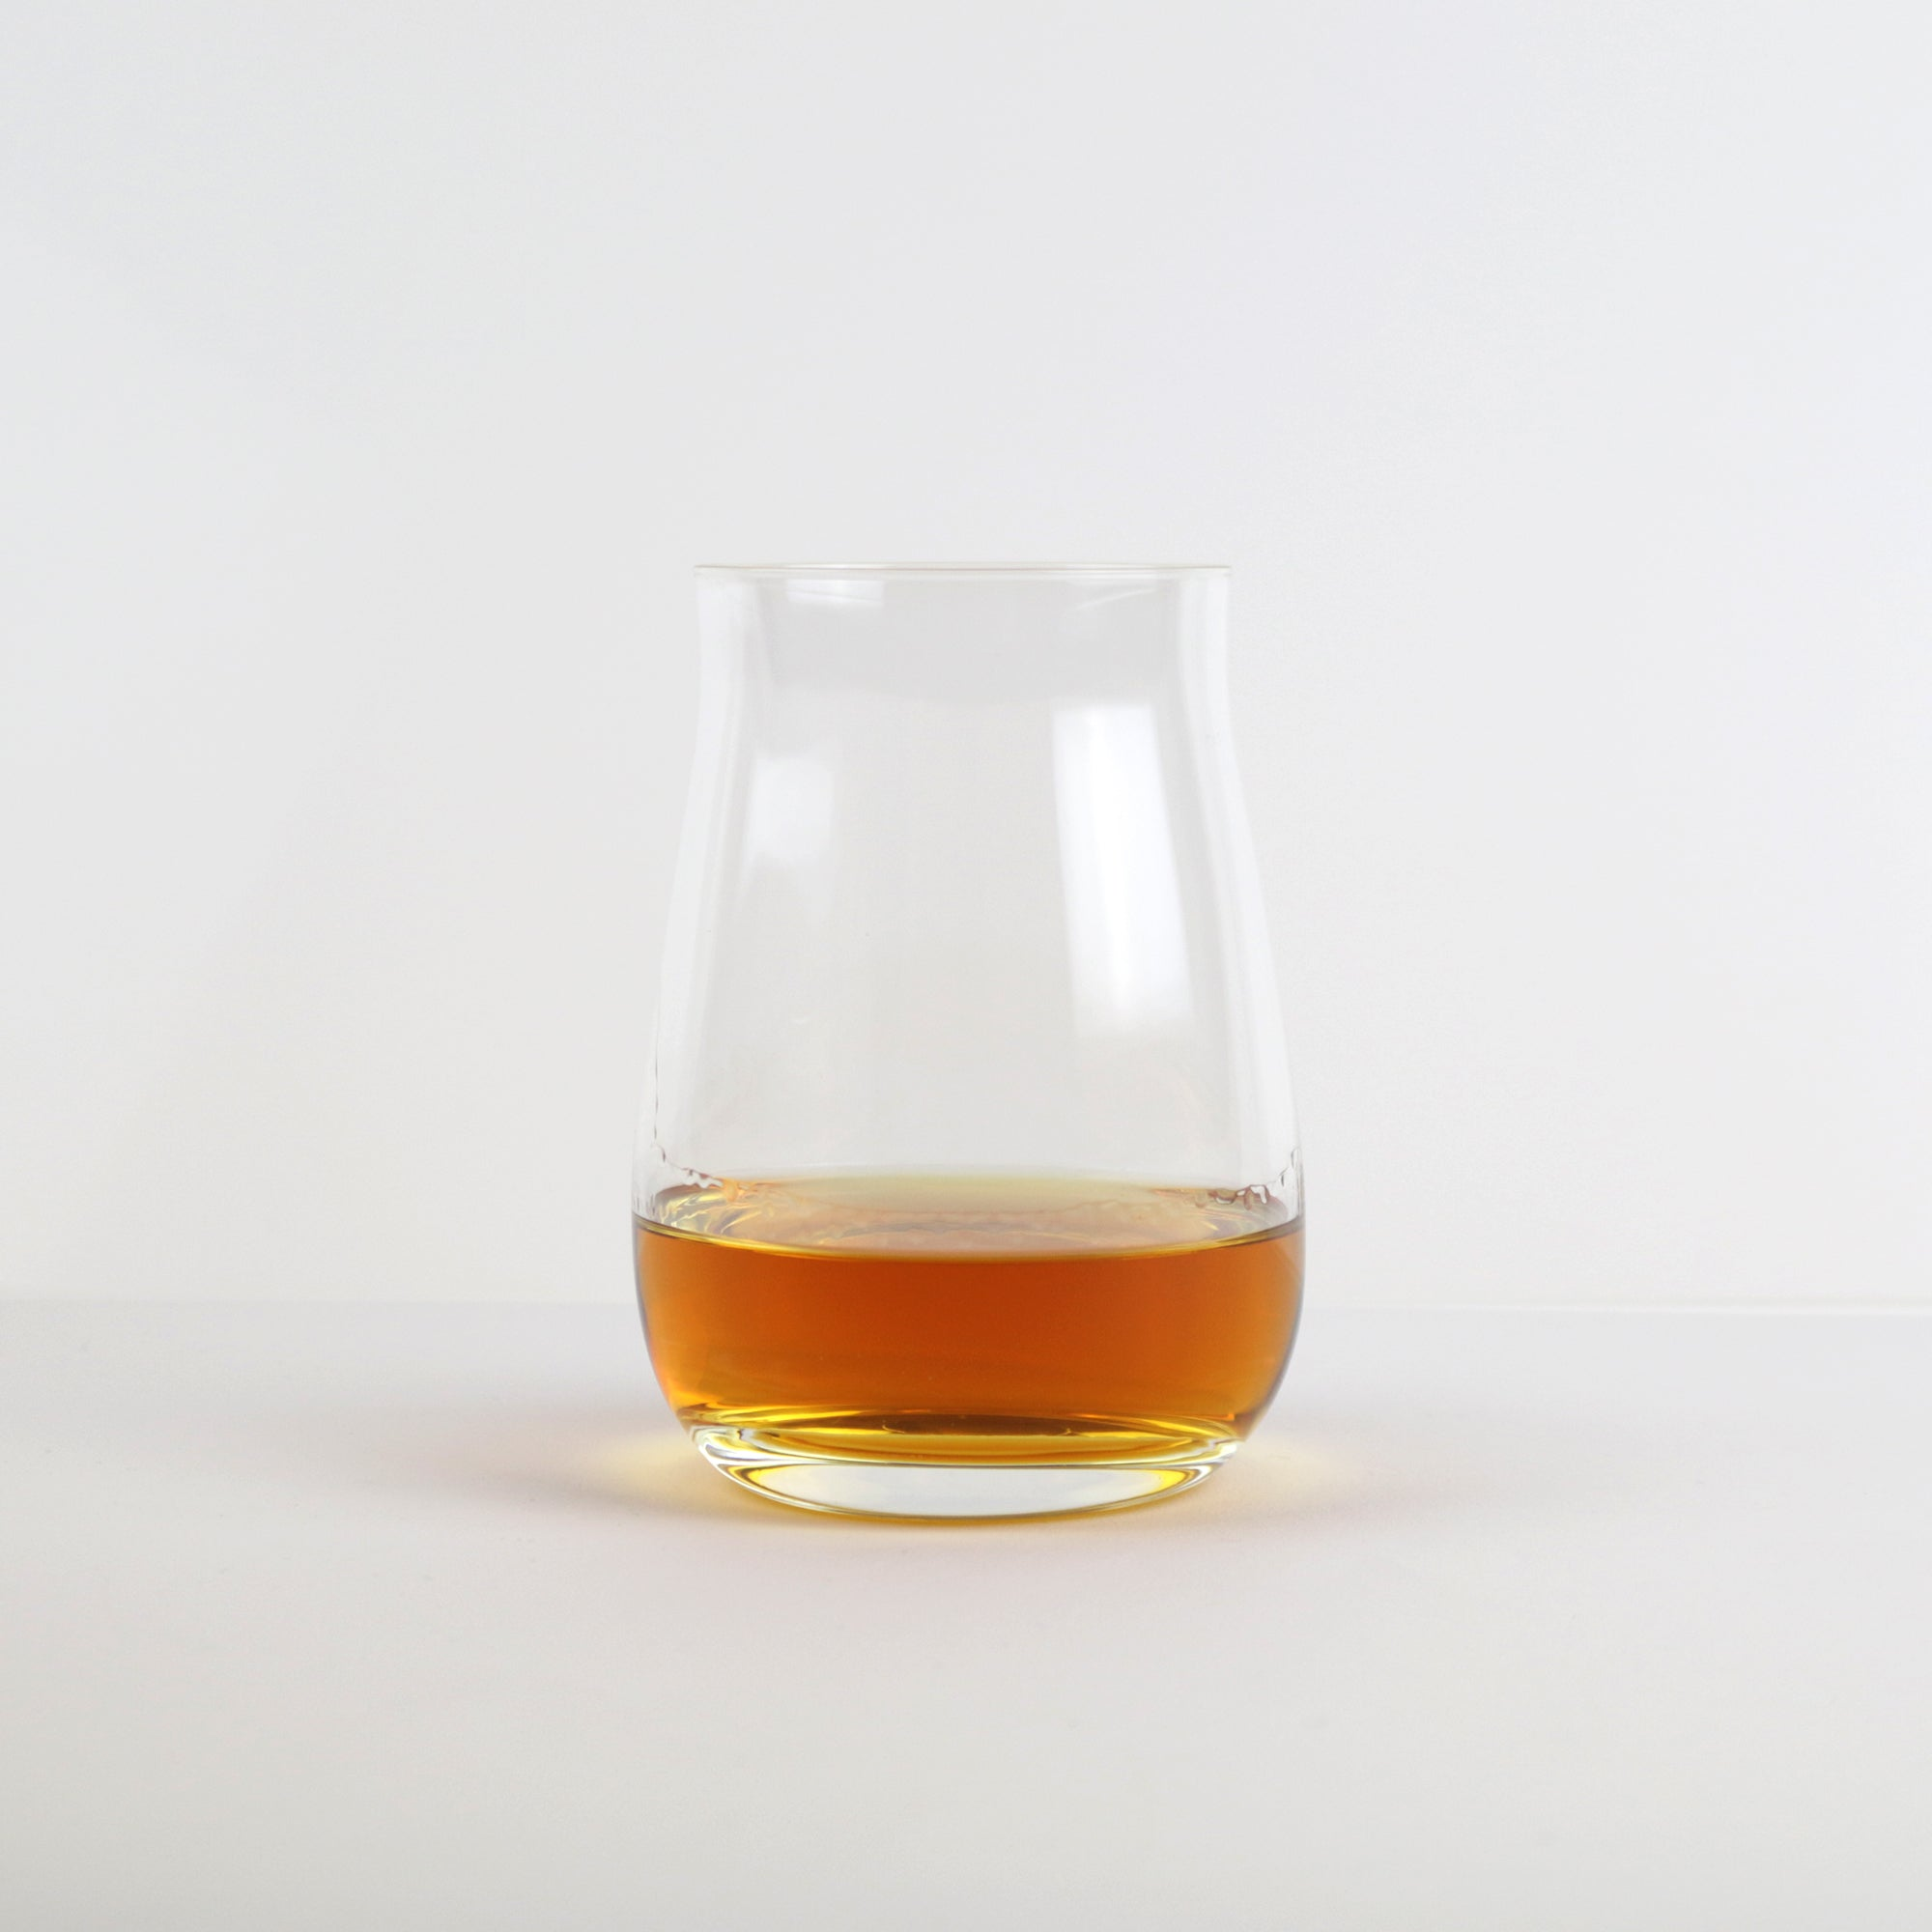 Spiegelau Bourbon Tasting Glass (Set of 4)